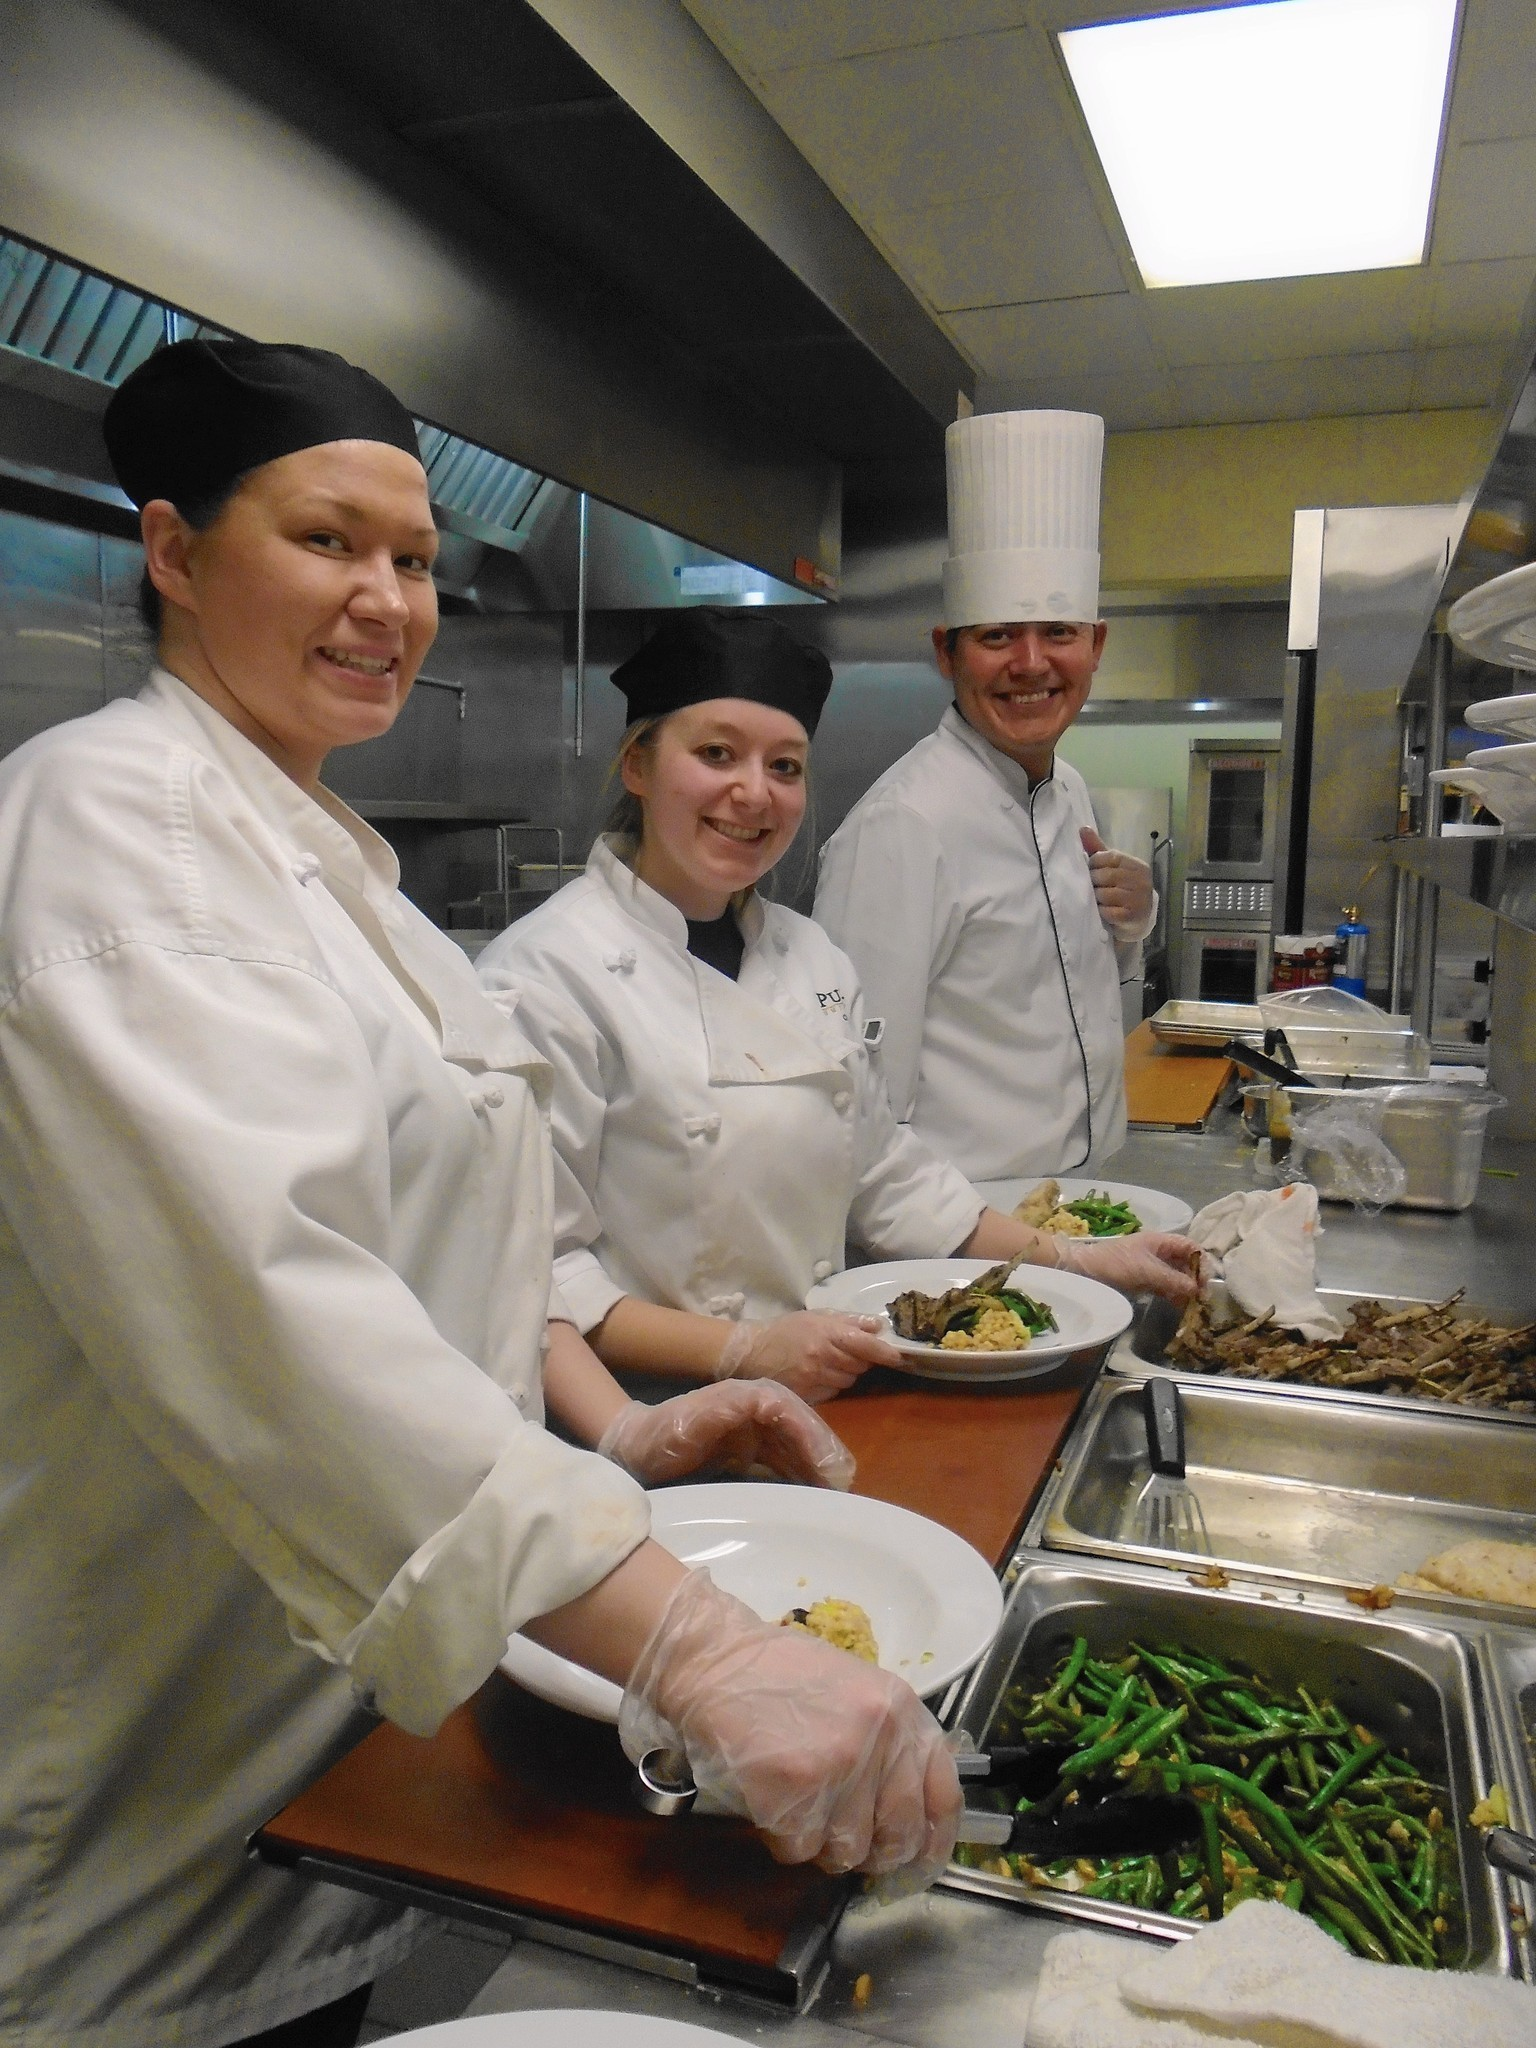 Culinary Instructor Jobs Connecticut - Best Culinary 2018